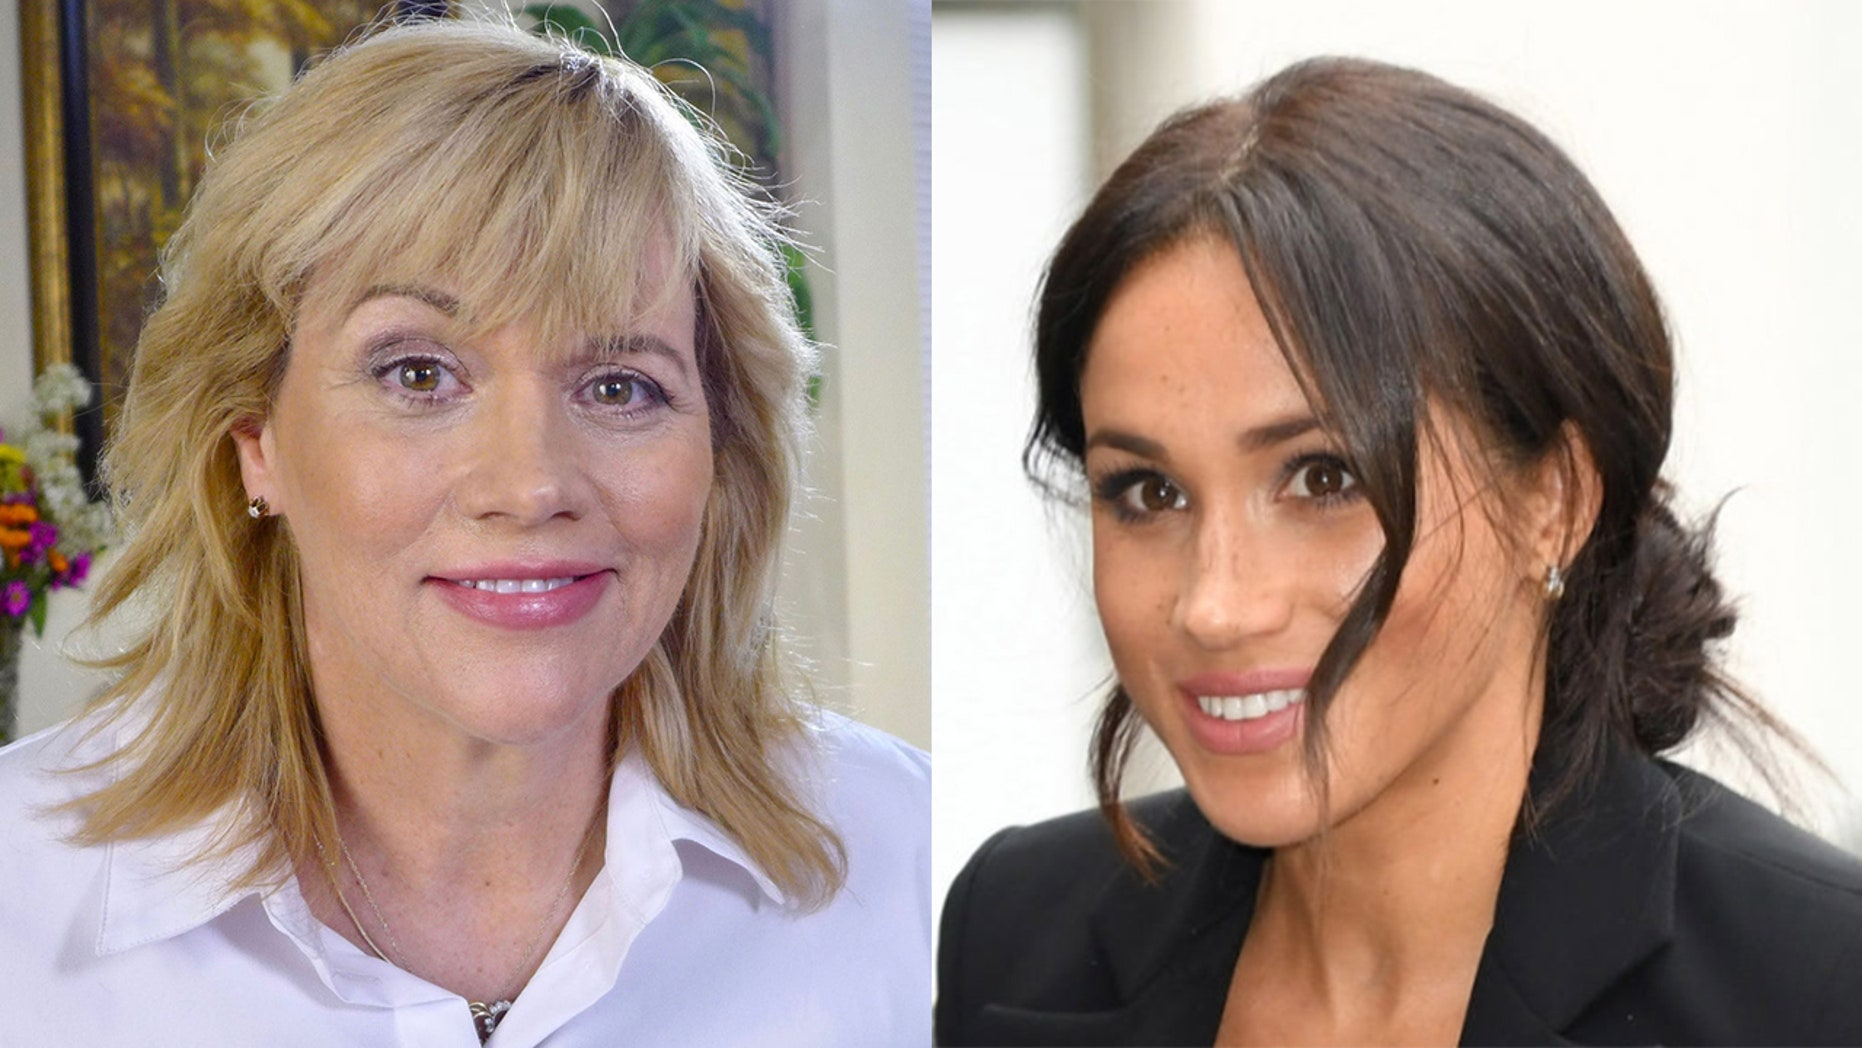 Samantha Markle attacks Meghan's mum Doria in latest rant